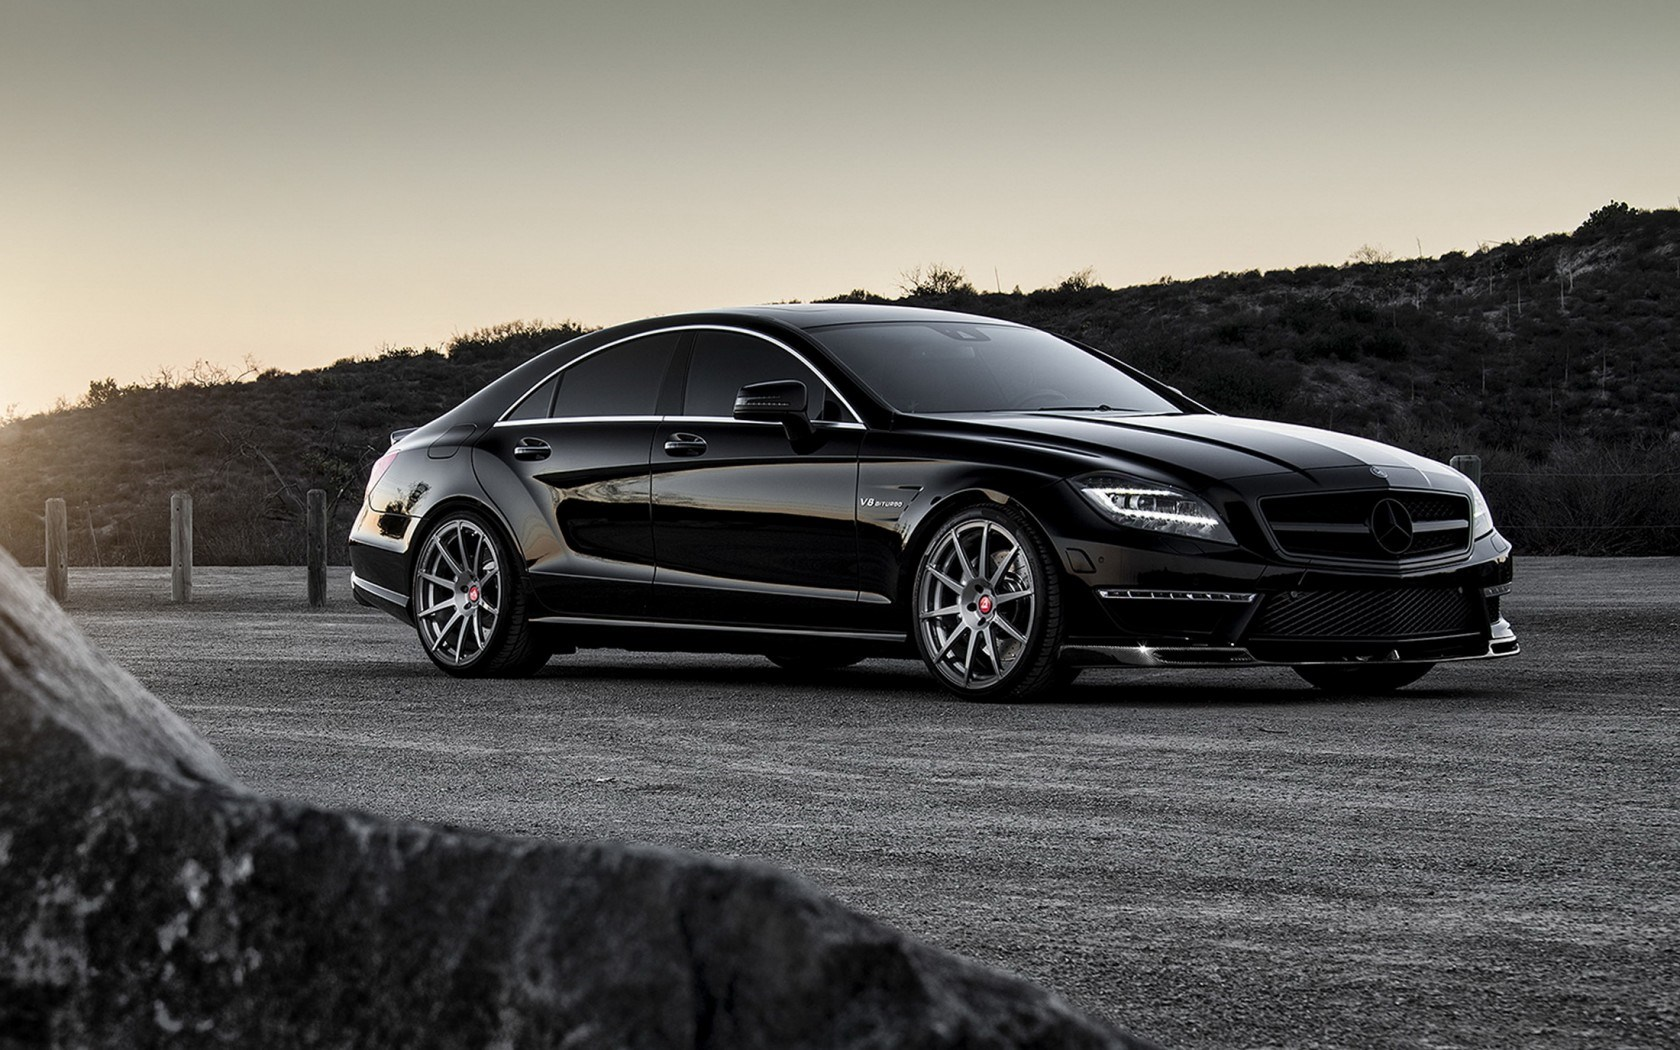 Mercedes-Benz CLS 63 AMG Tuning Car